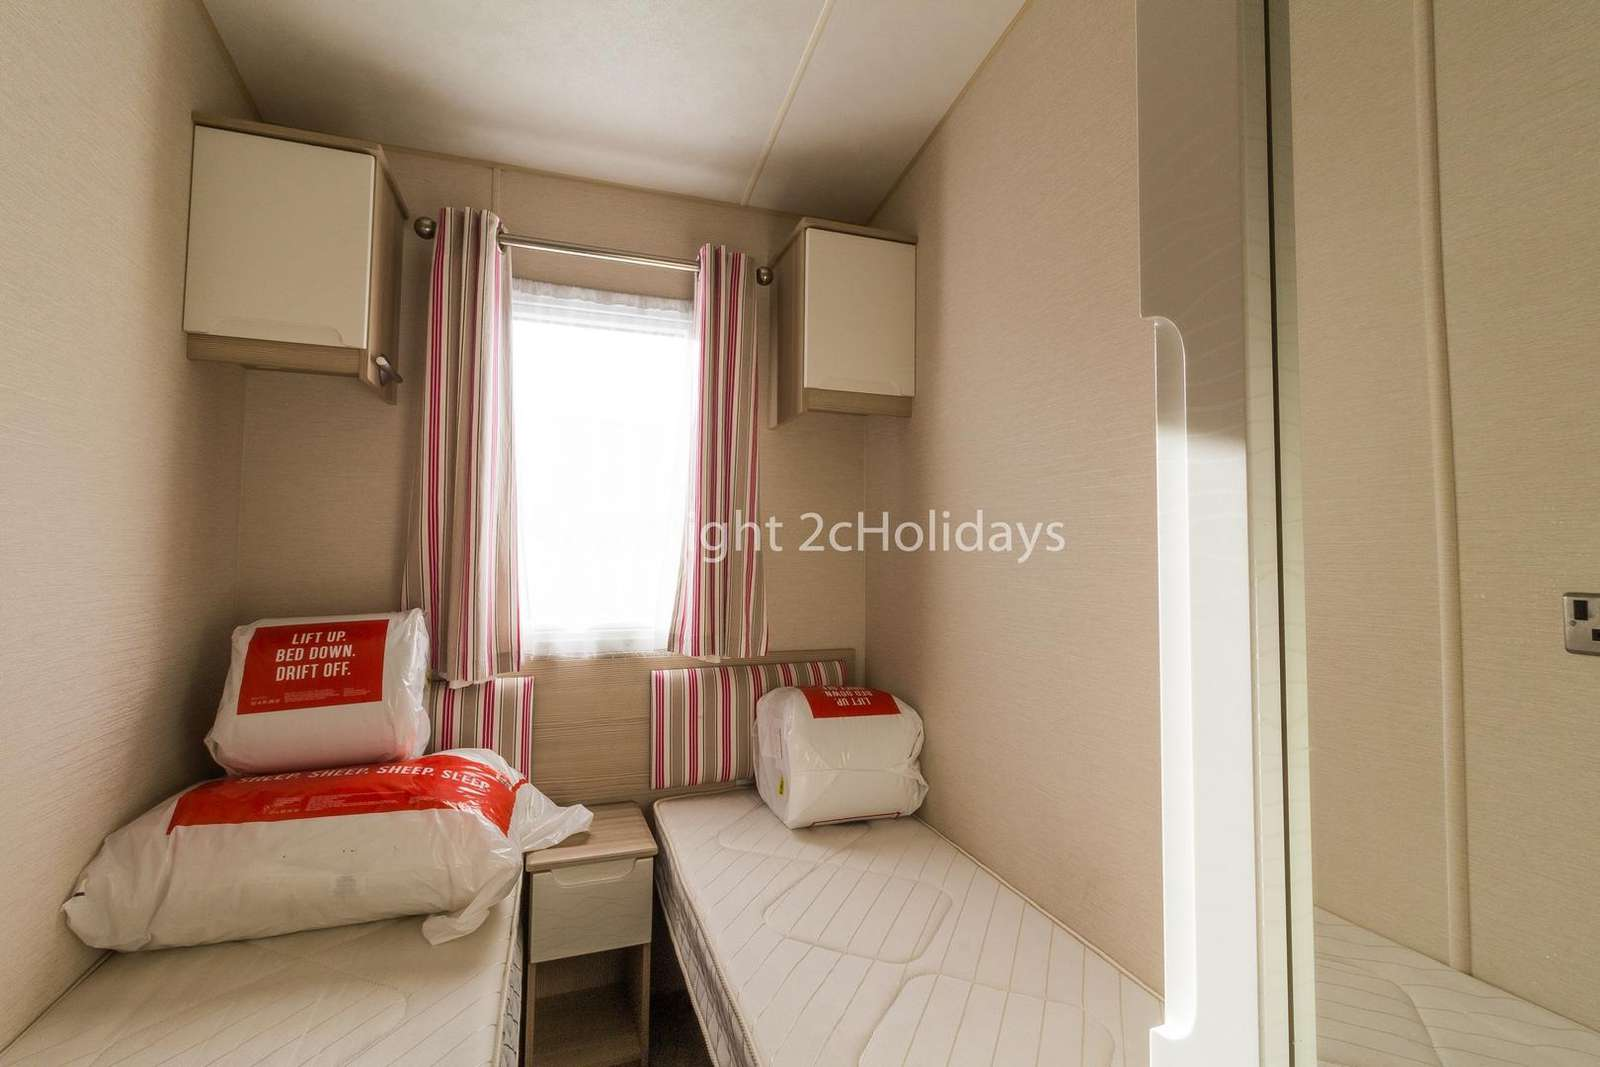 Affordable holidays in Lowestoft with 2cHolidays